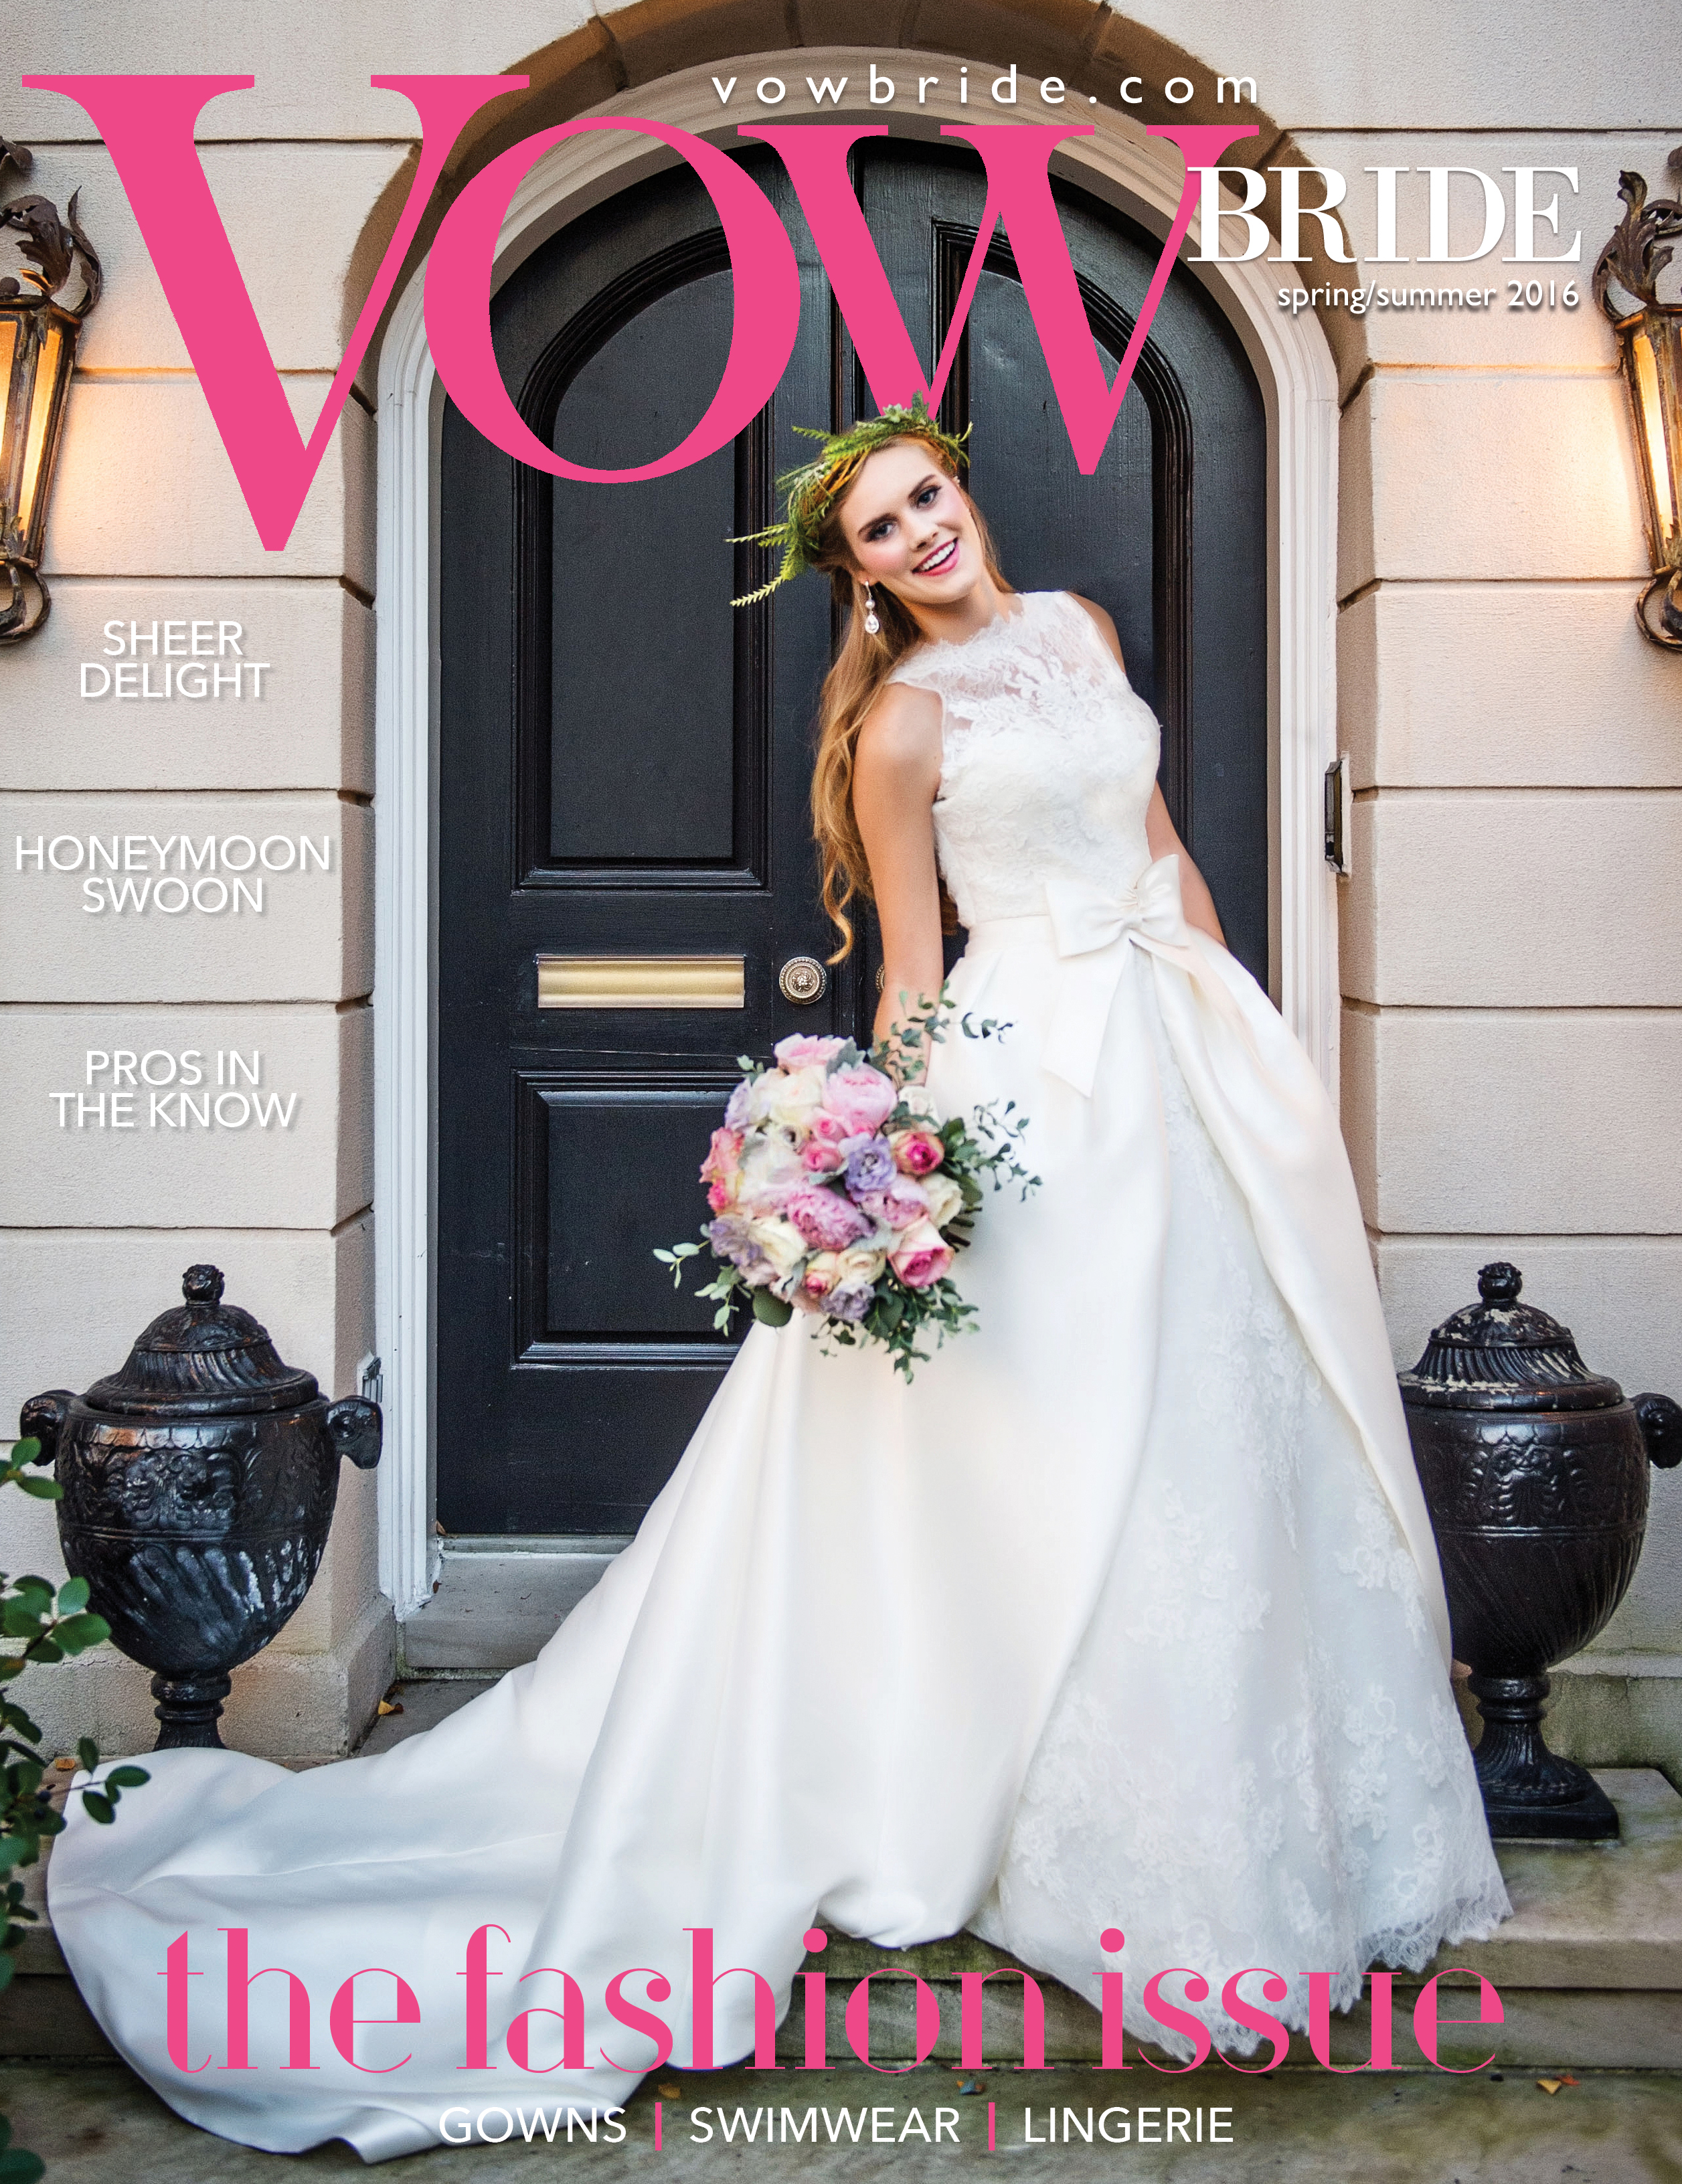 vowbride-ss2016-cover